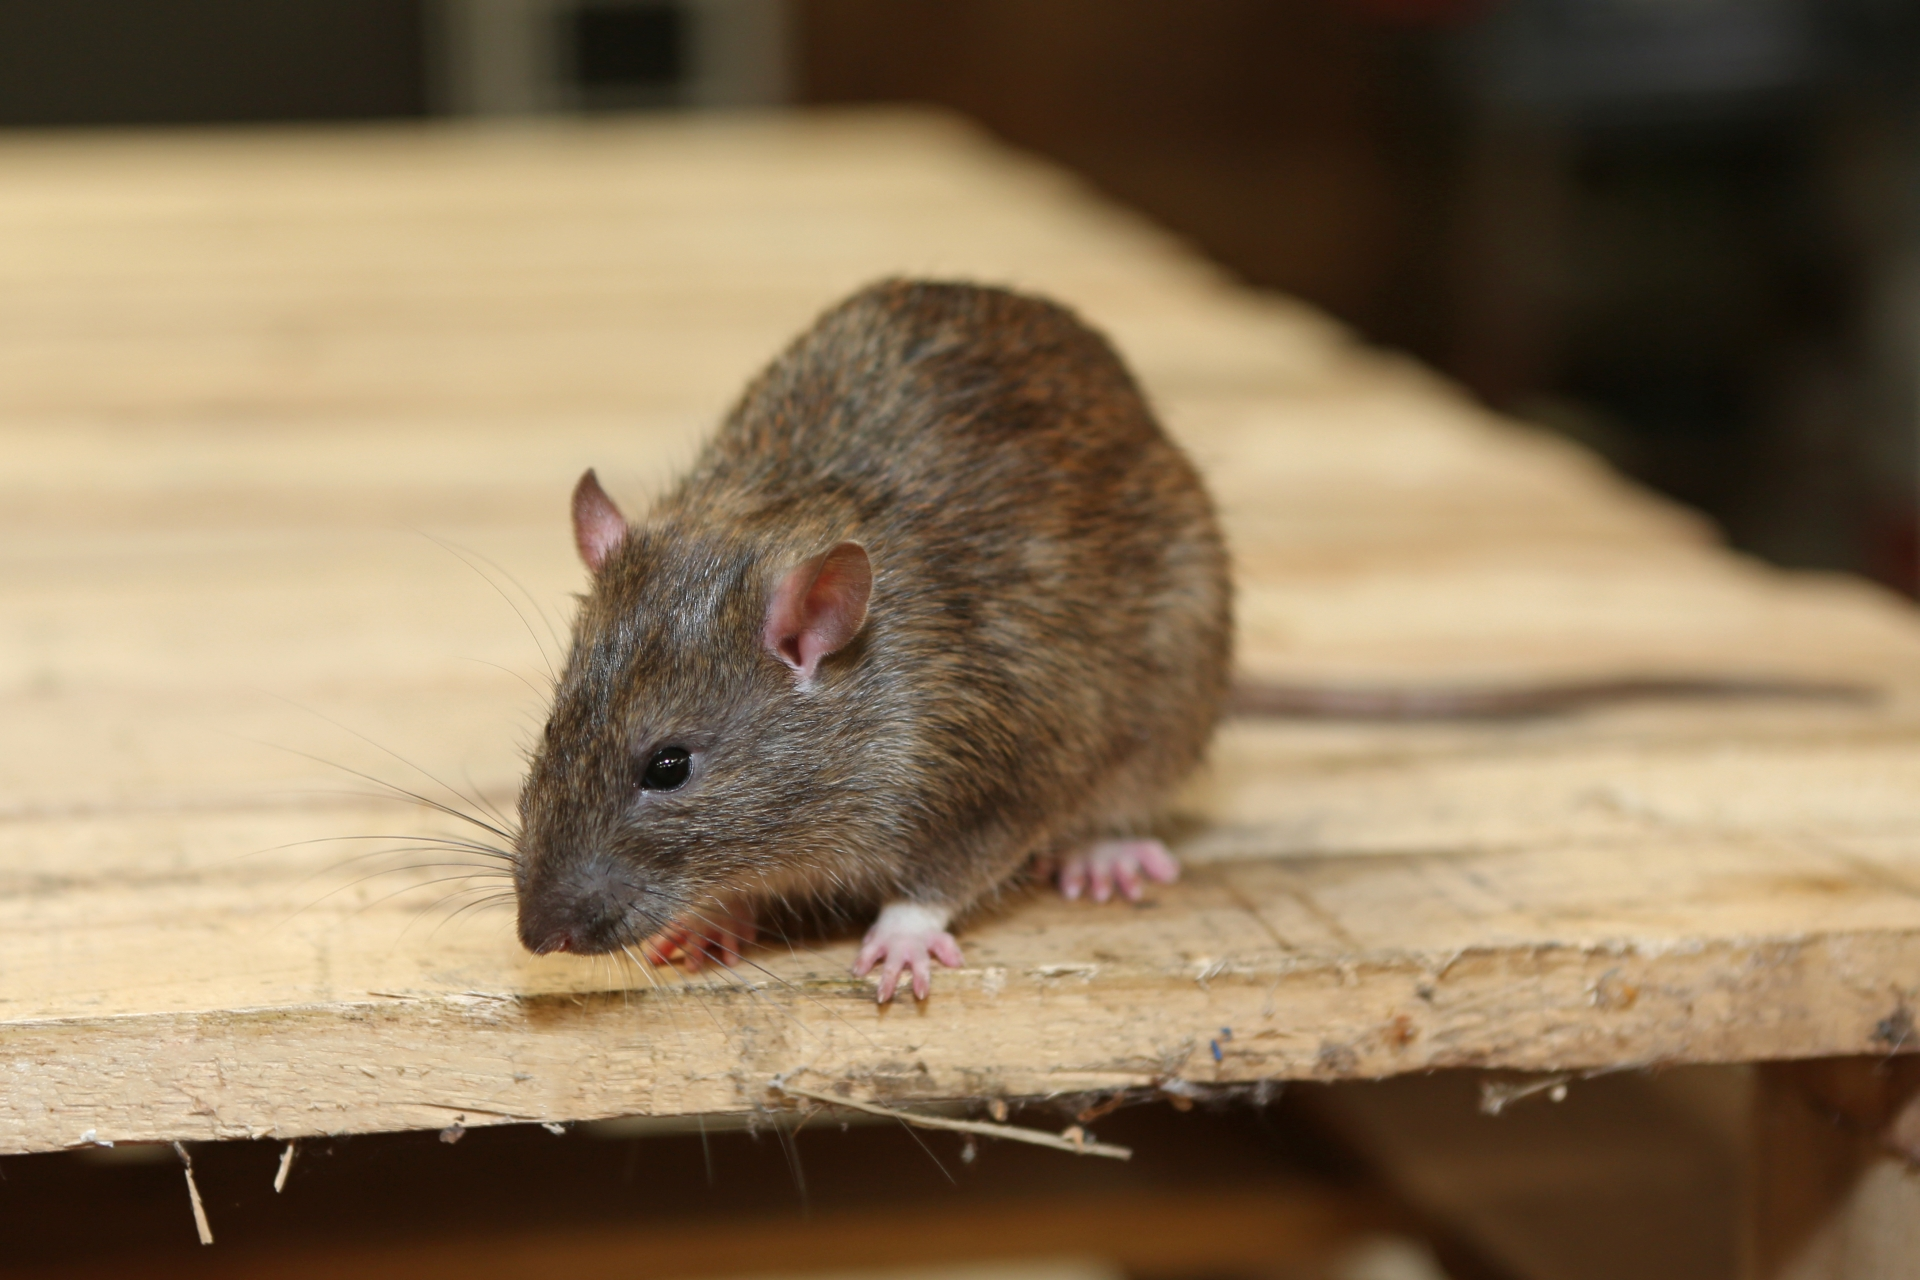 Rat Control, Pest Control in Twickenham, St. Margarets, TW1, TW2. Call Now 020 8166 9746